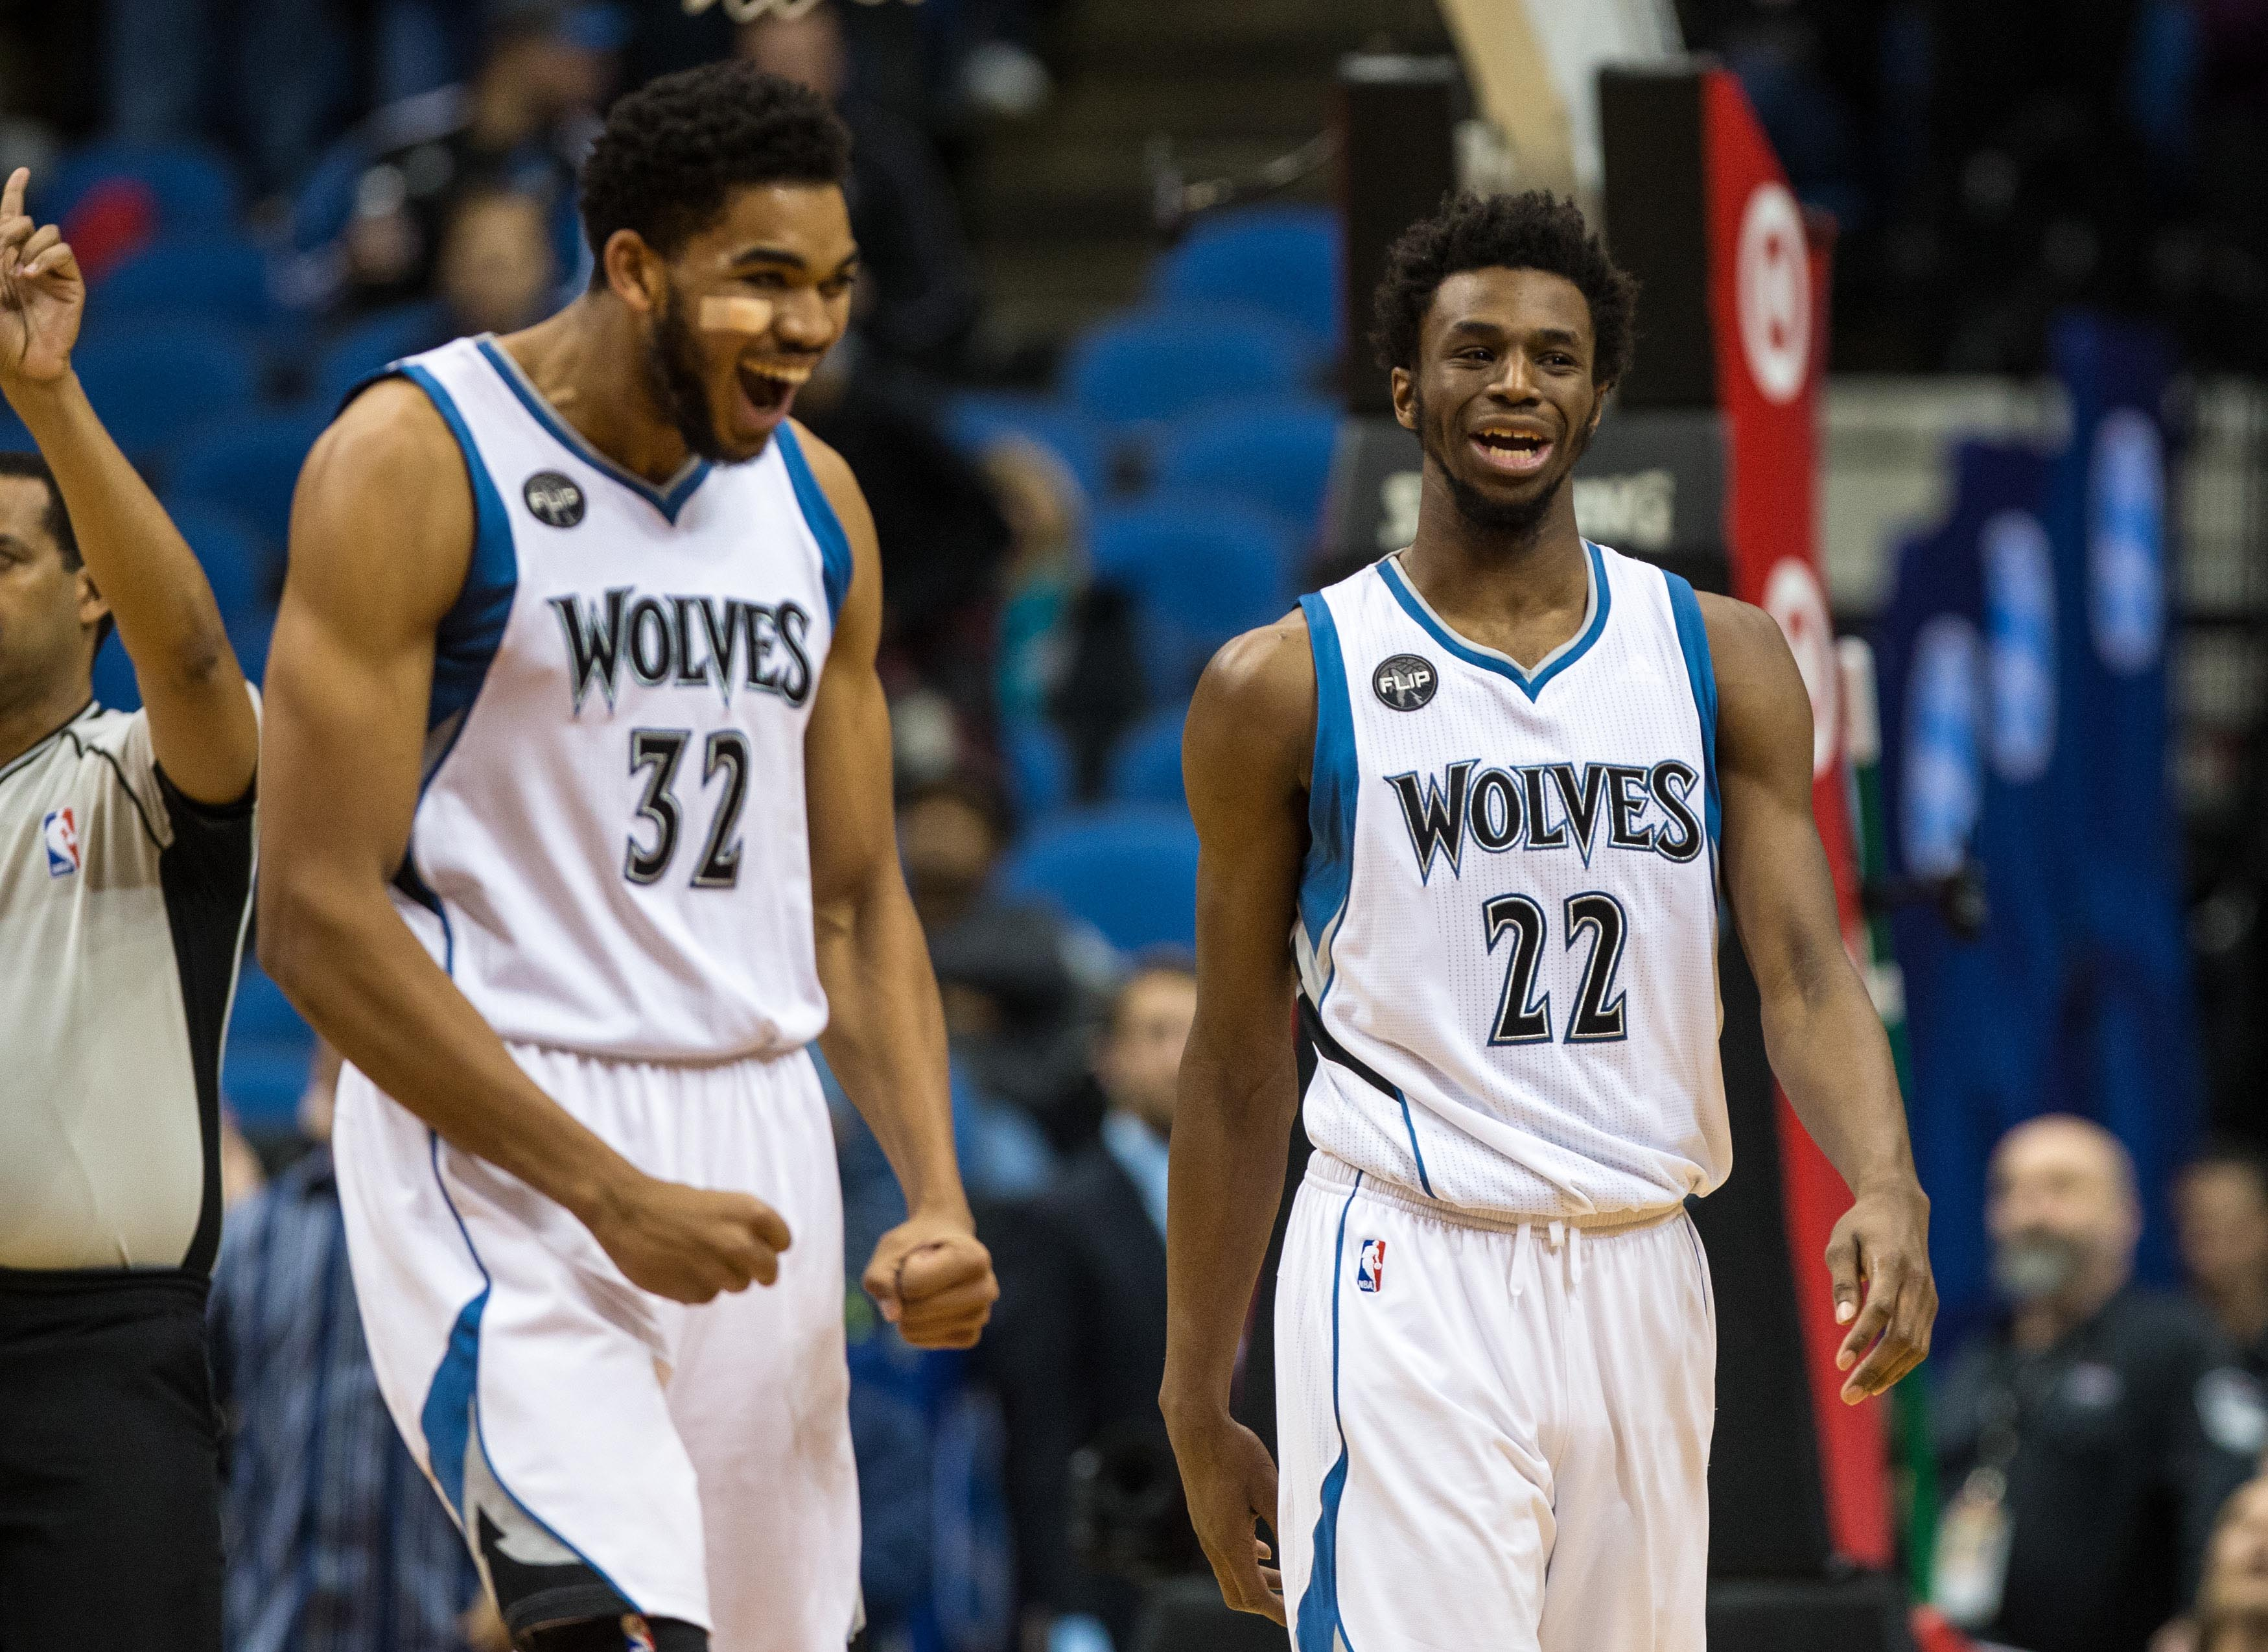 Timberwolves Number 22